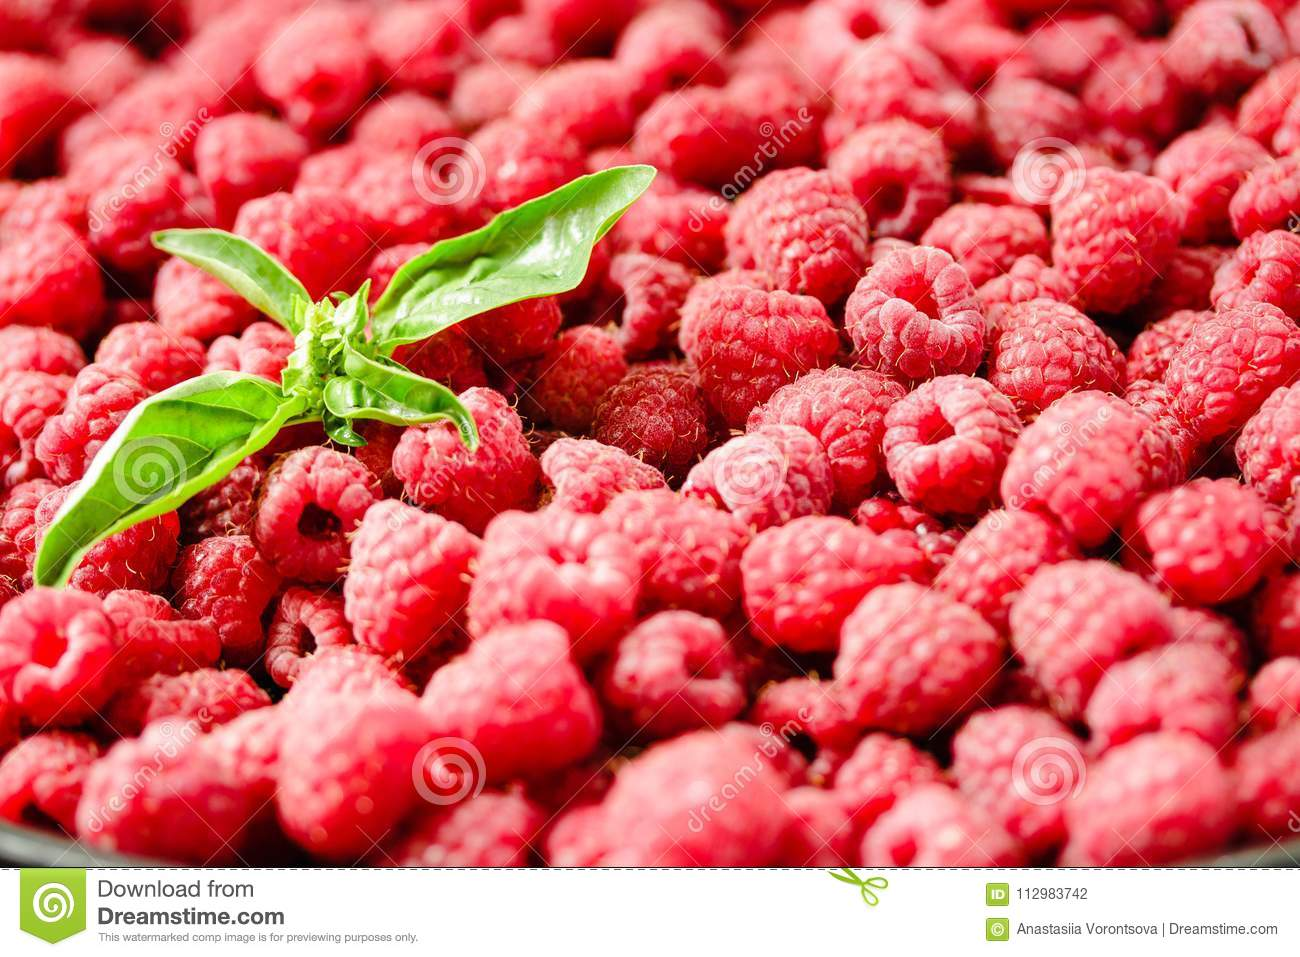 Fresh raspberry and basil background closeup photo.Top view..Detox diet food and raw vegan concept.